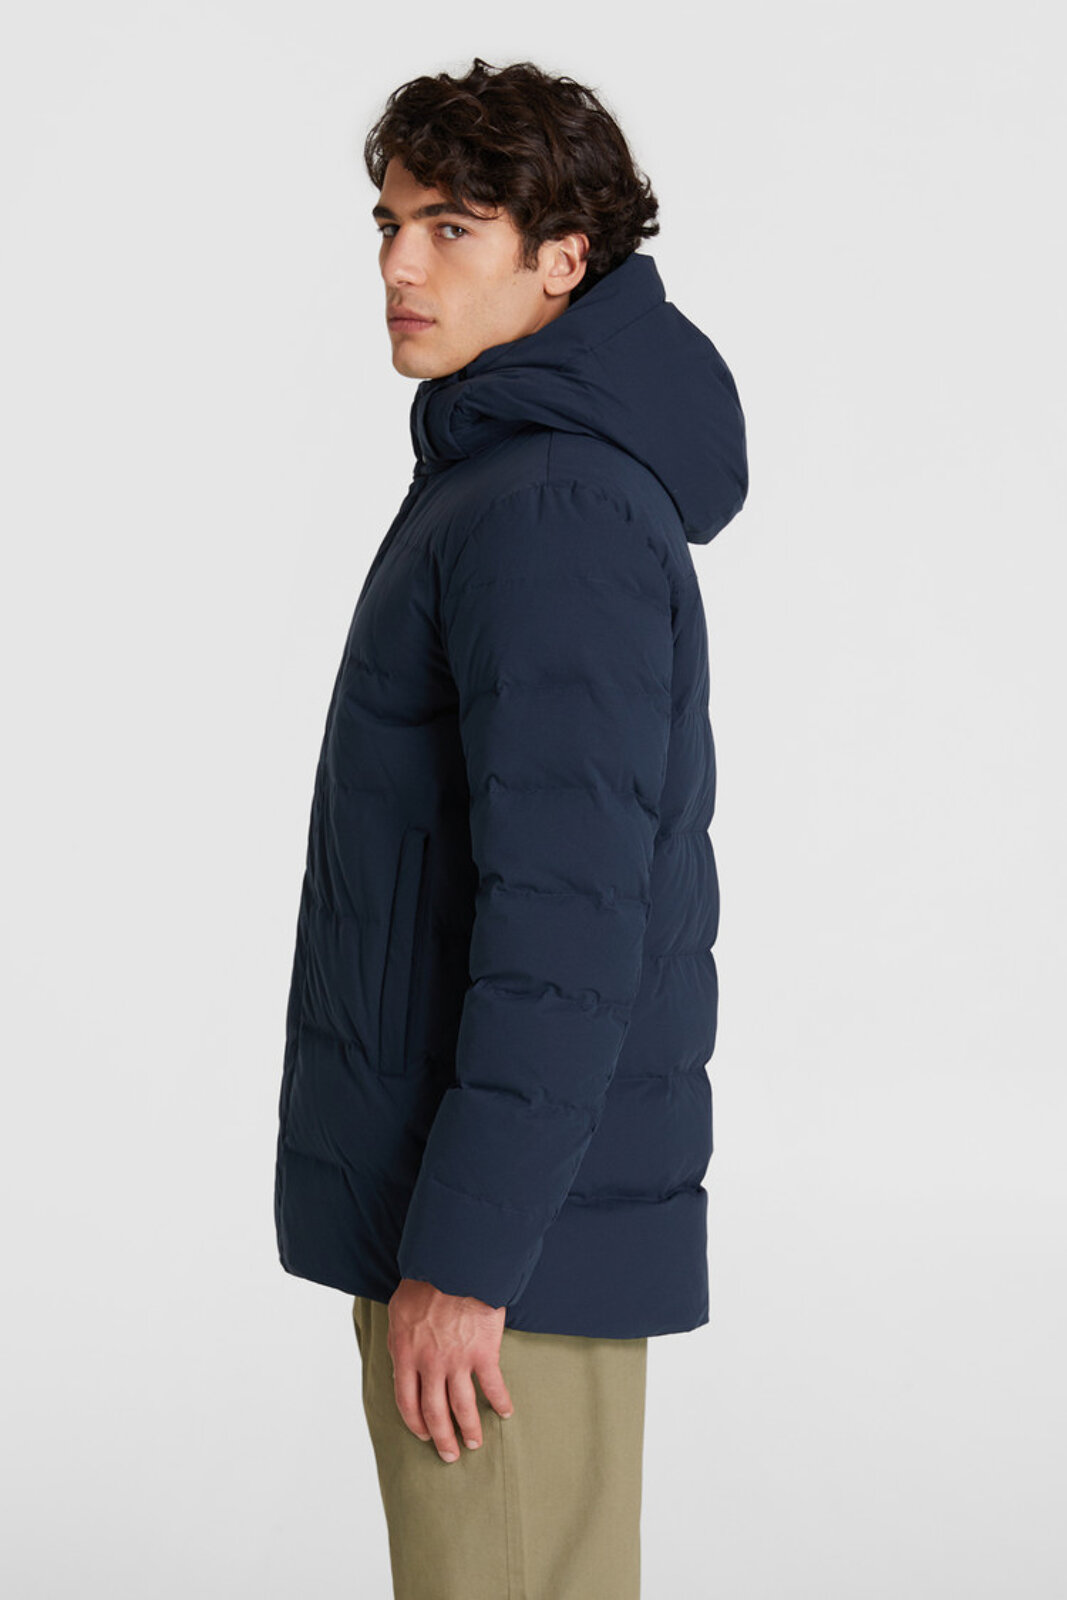 Sierra Stag Quilted Jacket Detachable Hood - Woolrich